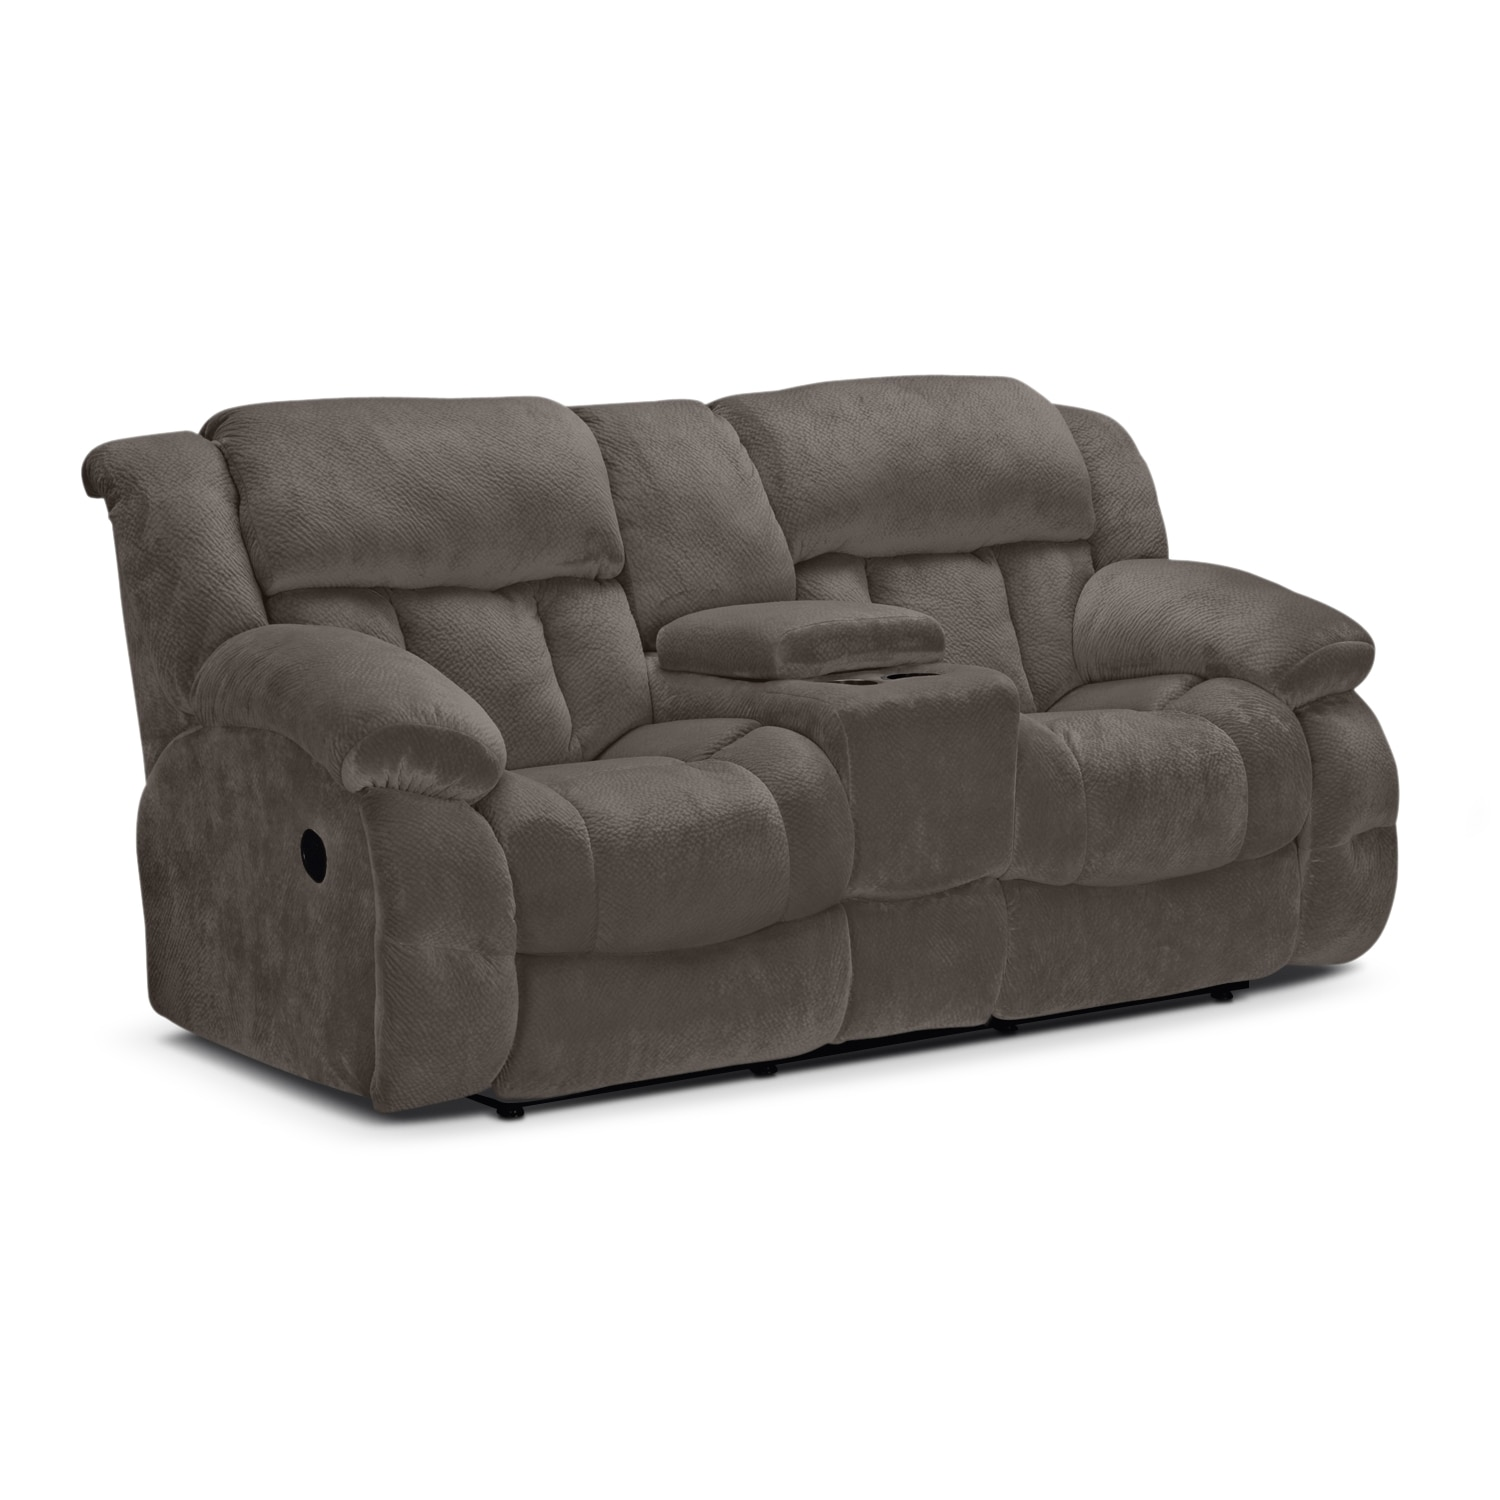 sc 1 st  Value City Furniture & Park City Dual Reclining Loveseat - Gray | Value City Furniture islam-shia.org